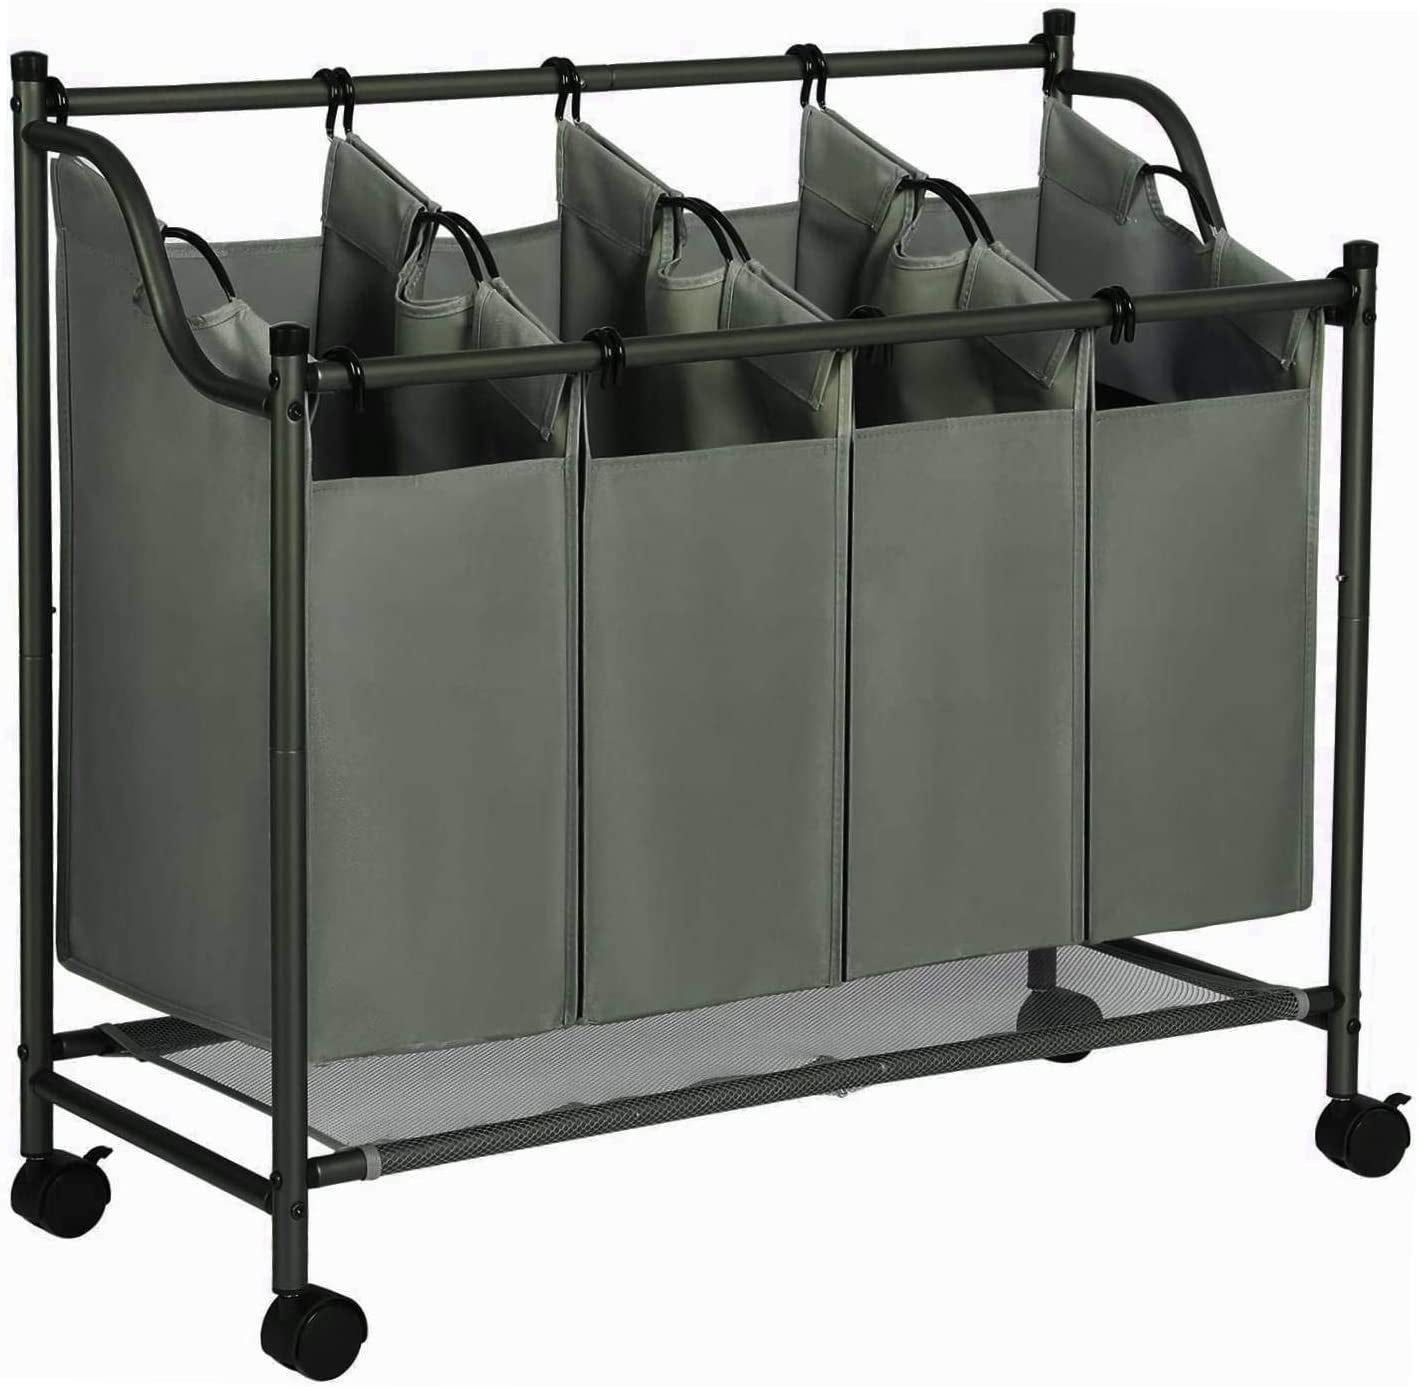 2 Pockets Each 4 Bags, Army Green JINAMART Brown Heavy Duty Laundry Sorter 4 Bag Laundry Hamper Basket with Wheels Storage Cart